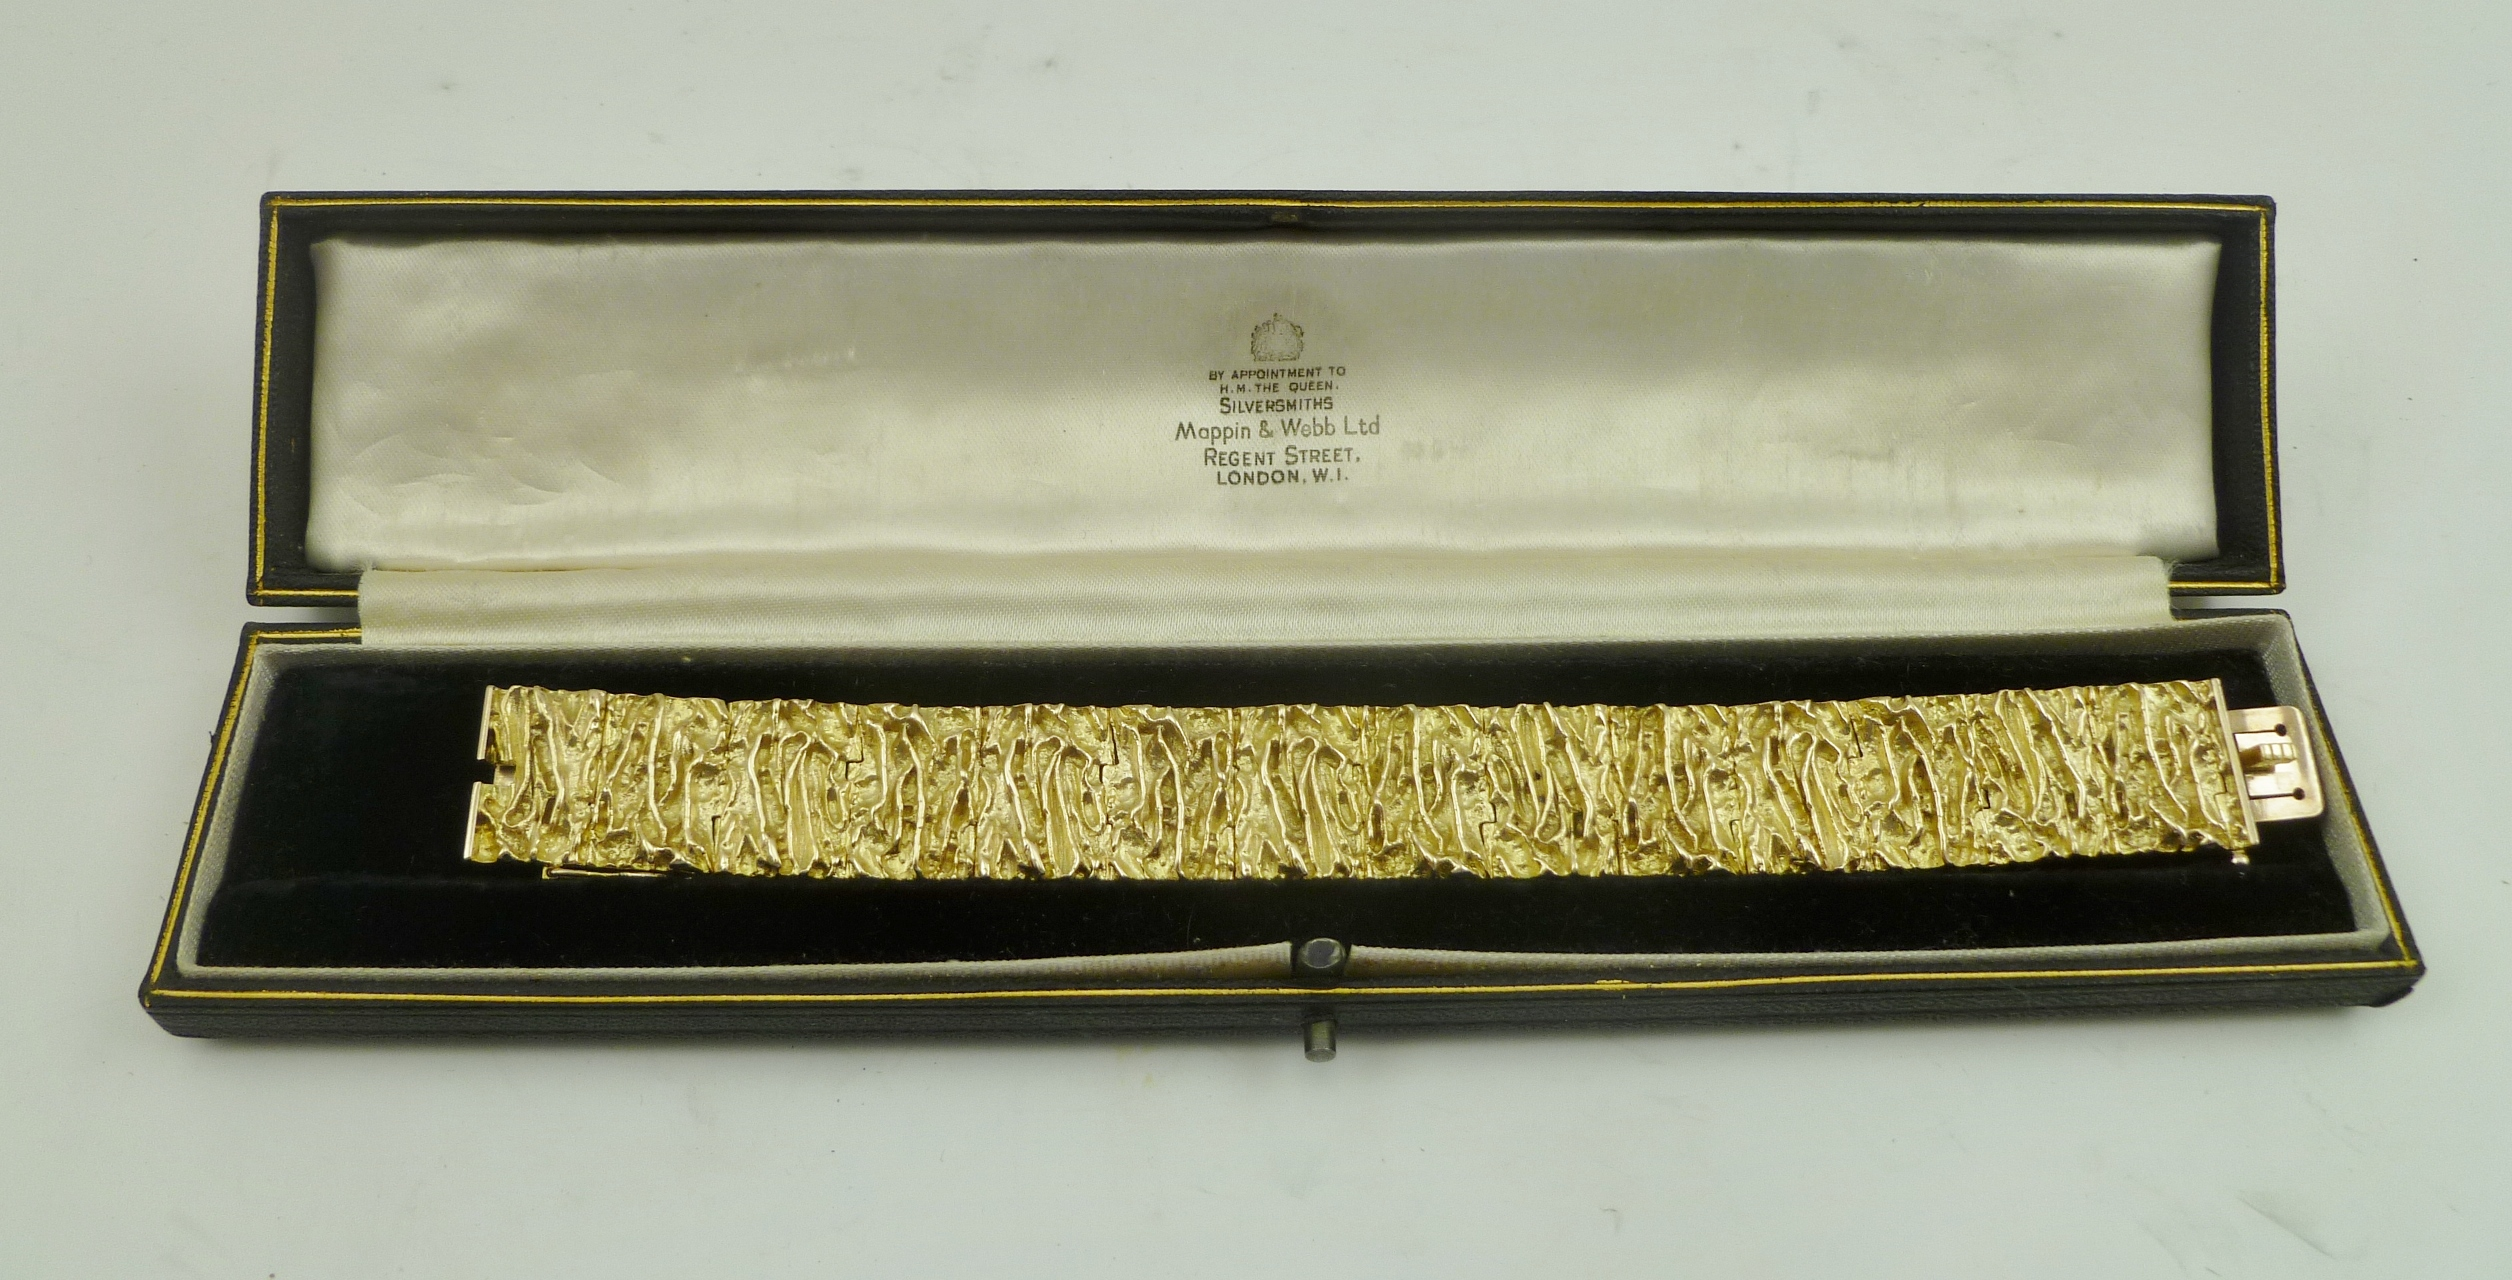 A 9CT GOLD BRACELET, formed from cast bark effect links, (purchased by vendor in 1968), weight 68g